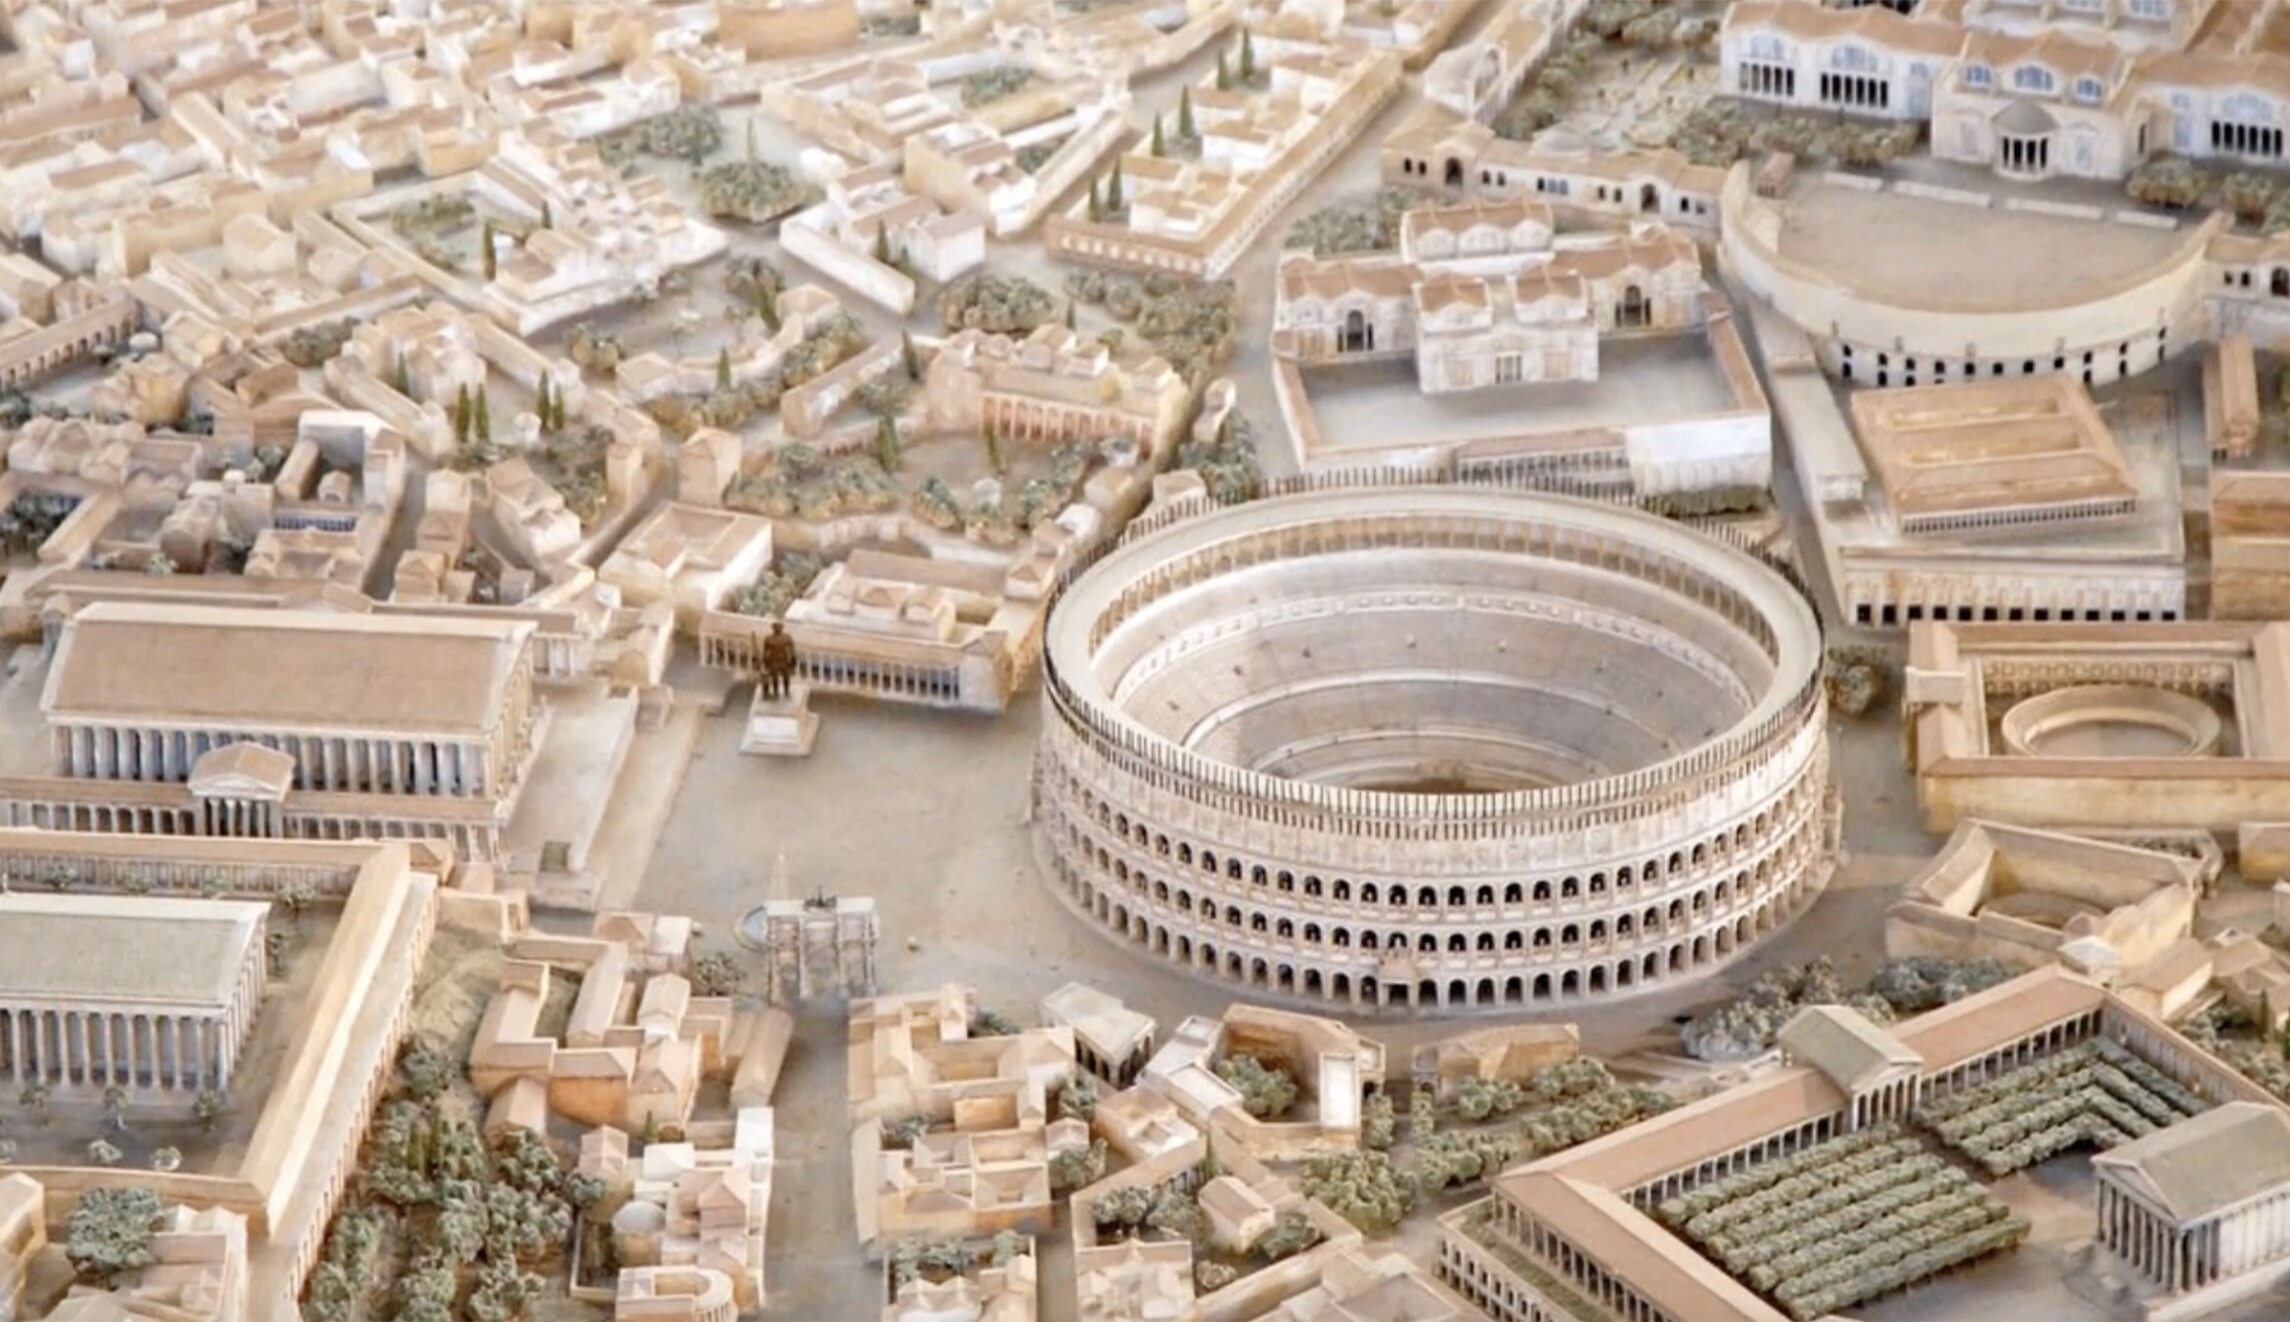 New model depicting ancient Rome with extraordinary detail opens to public